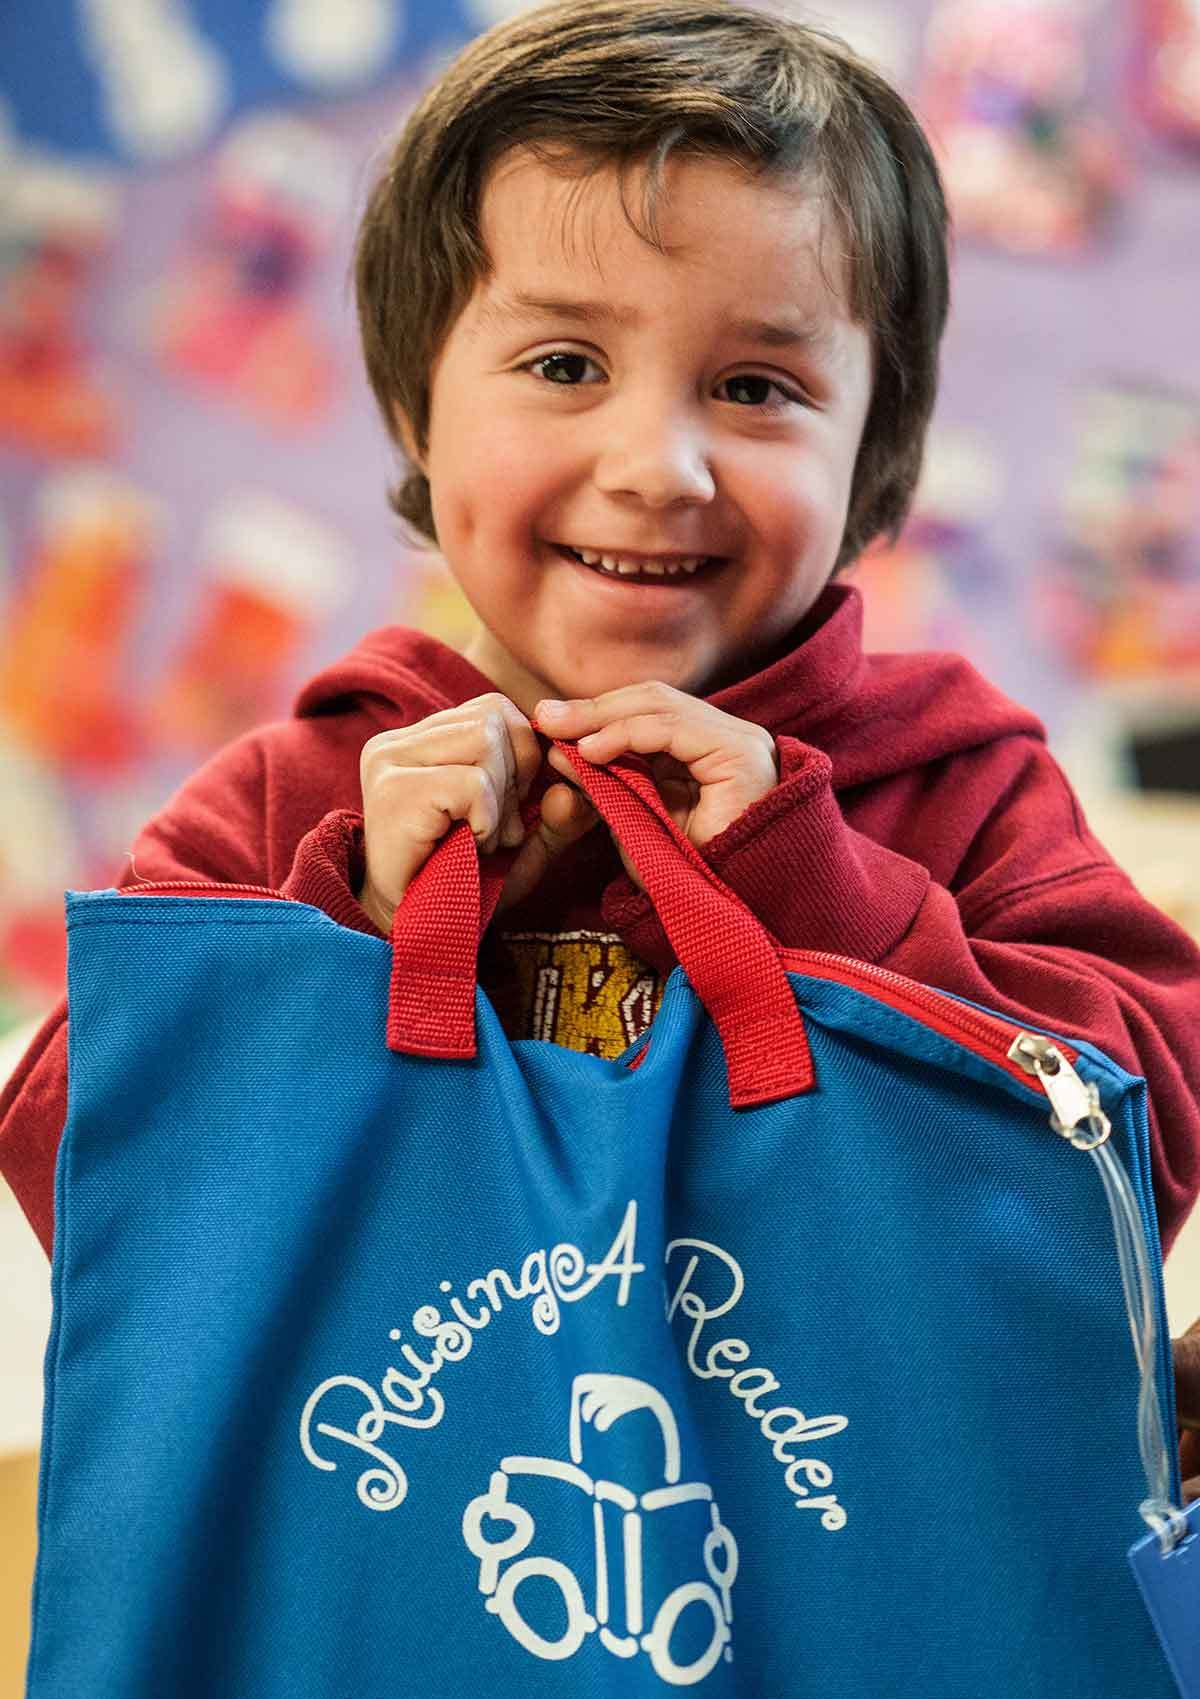 Young boy holding a school bag smiling at the camera photo